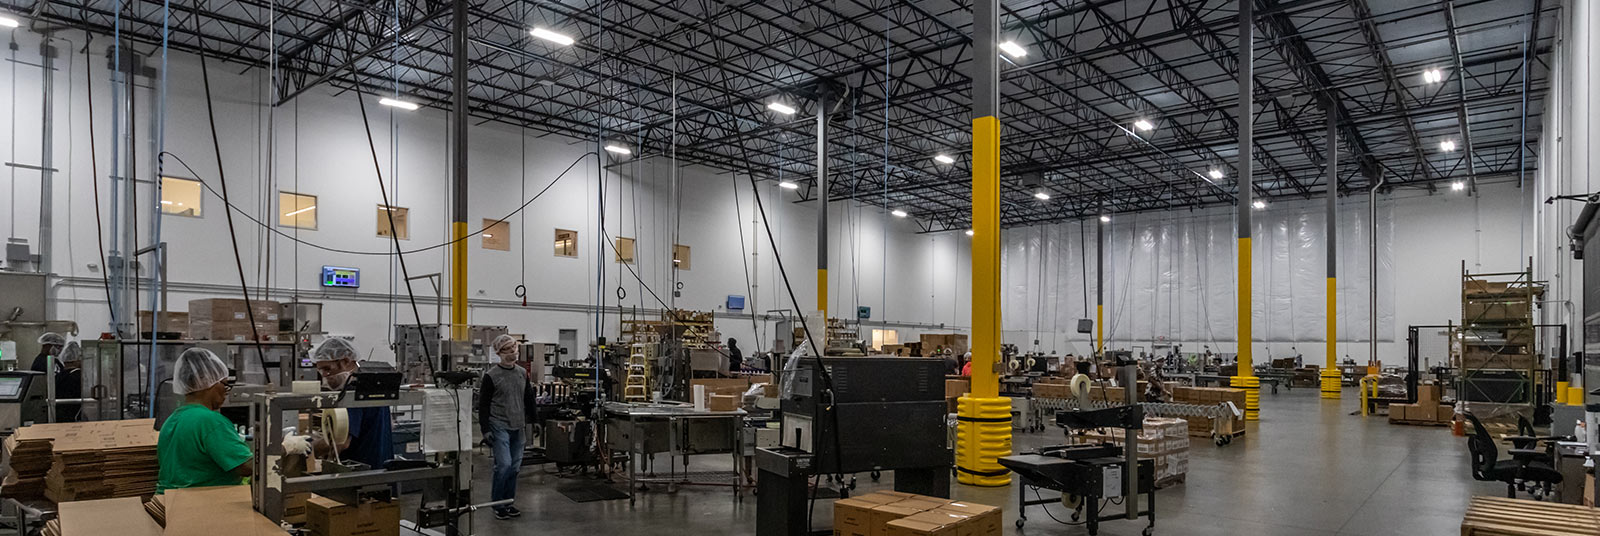 Processing and packaging facility inside the Nehemiah Manufacturing facility in Cincinnati, Ohio.